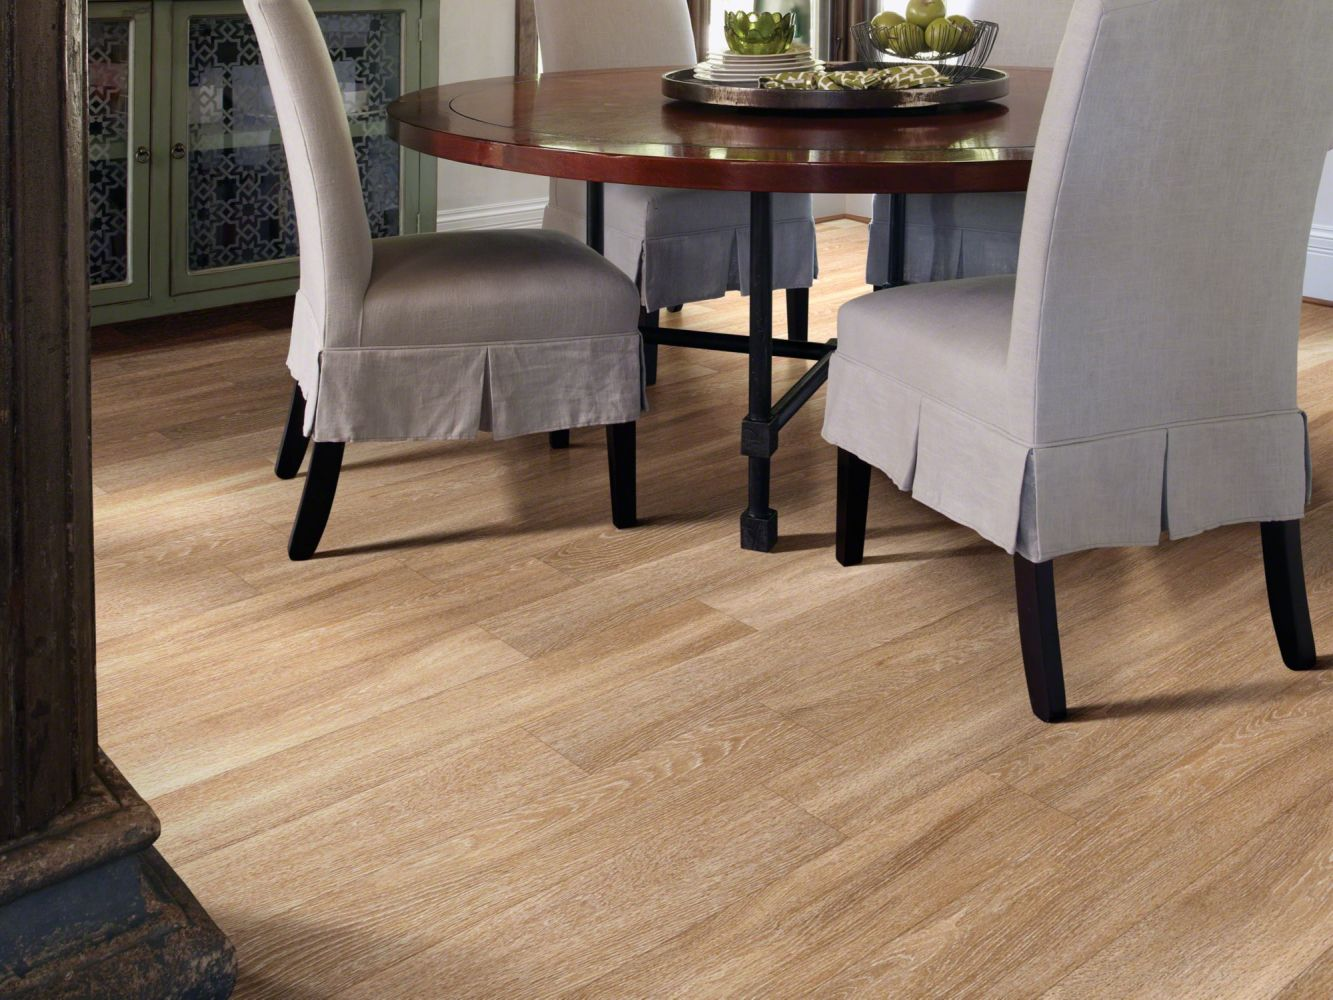 Shaw Floors 5th And Main Metropolis 6 Five Points 00235_5M216